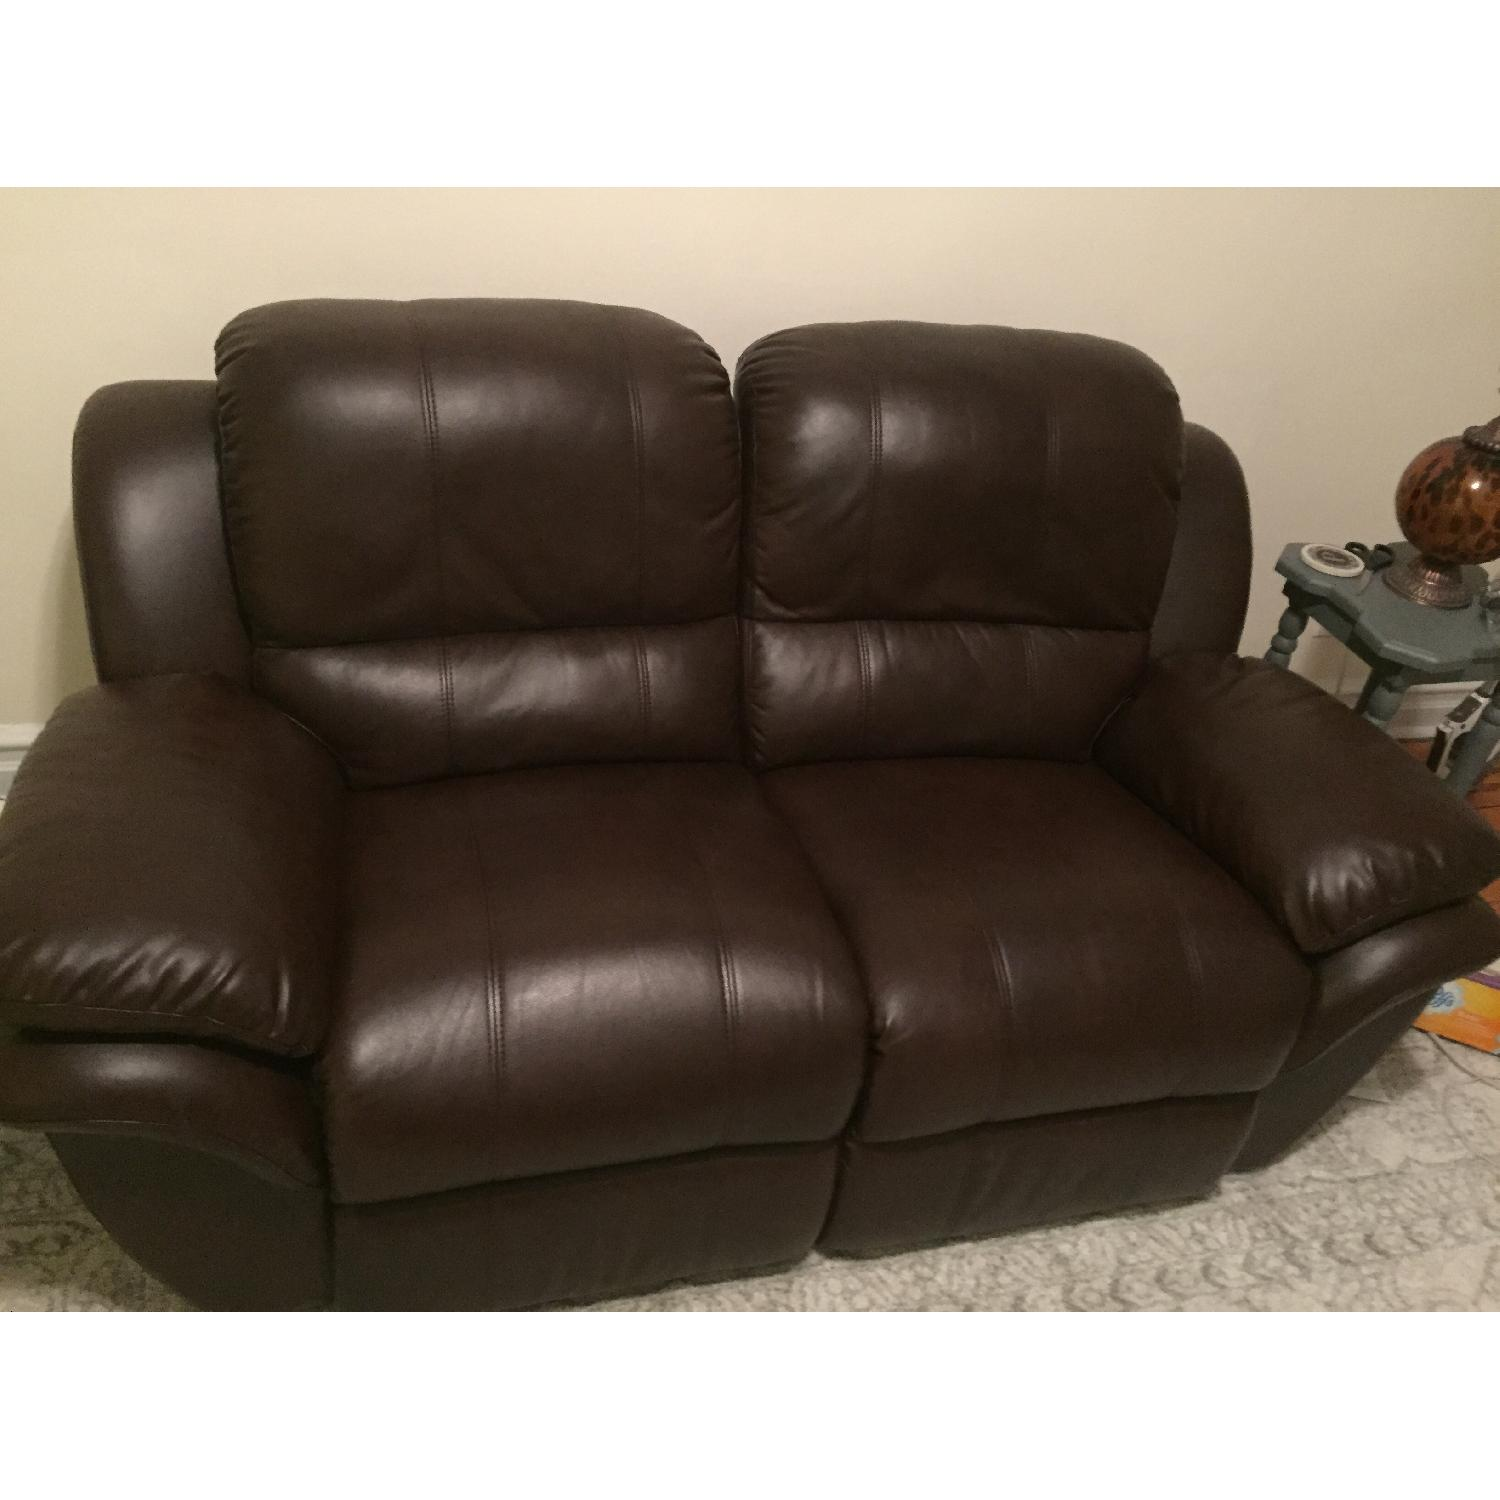 Leather Reclining Loveseat - image-1